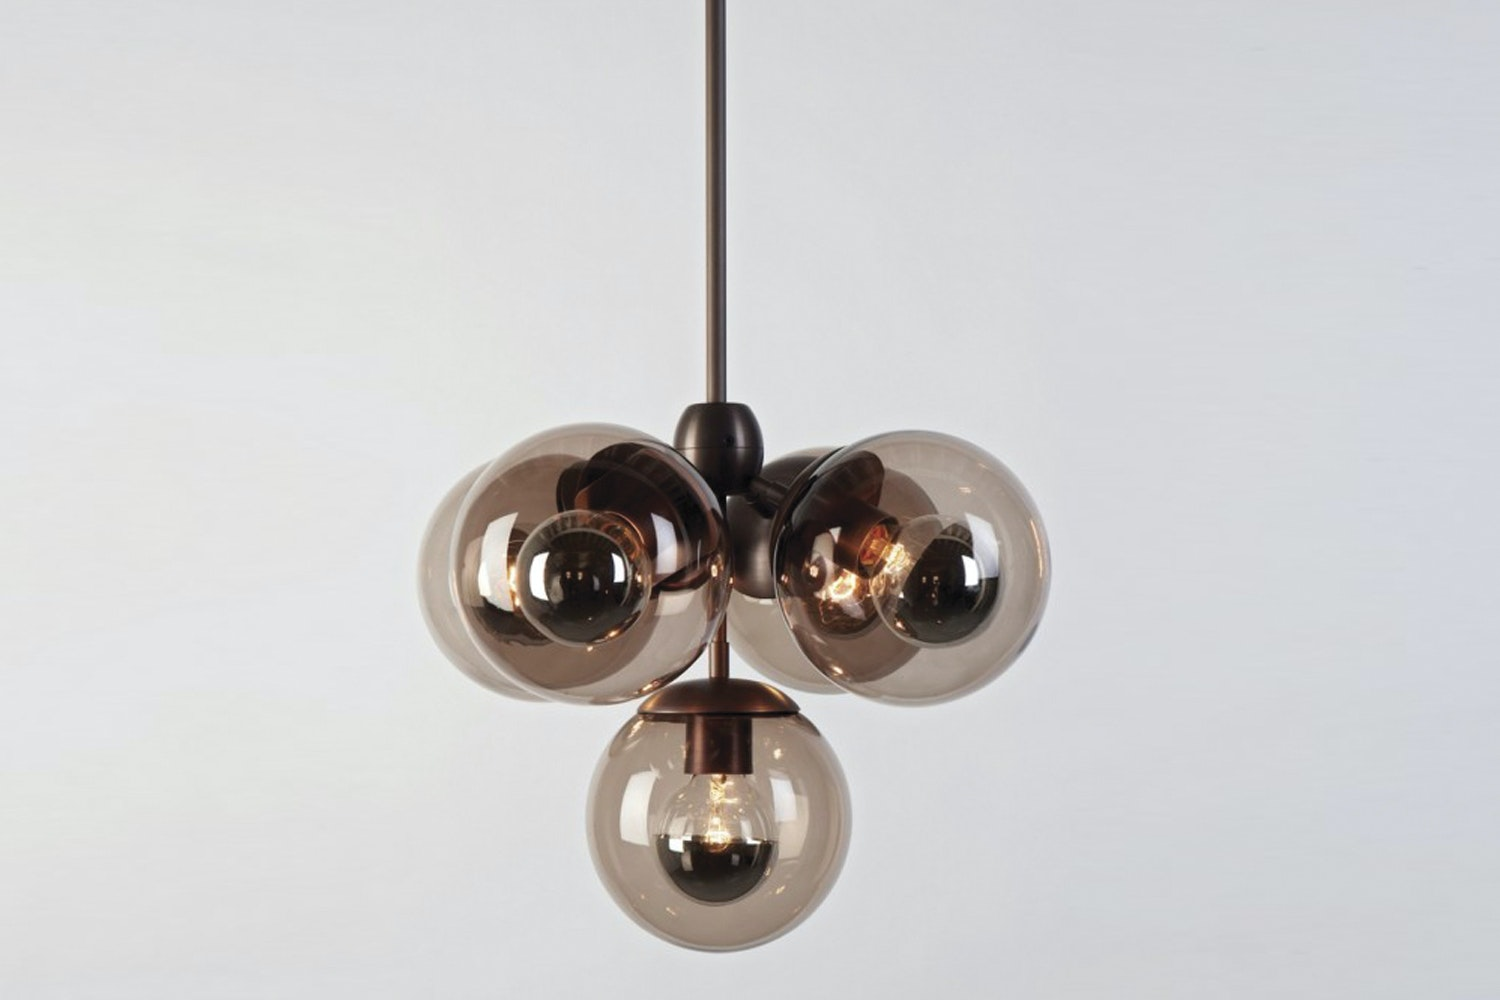 Modo Pendant Black, Smoked Suspension Lamp by Jason Miller for Roll & Hill